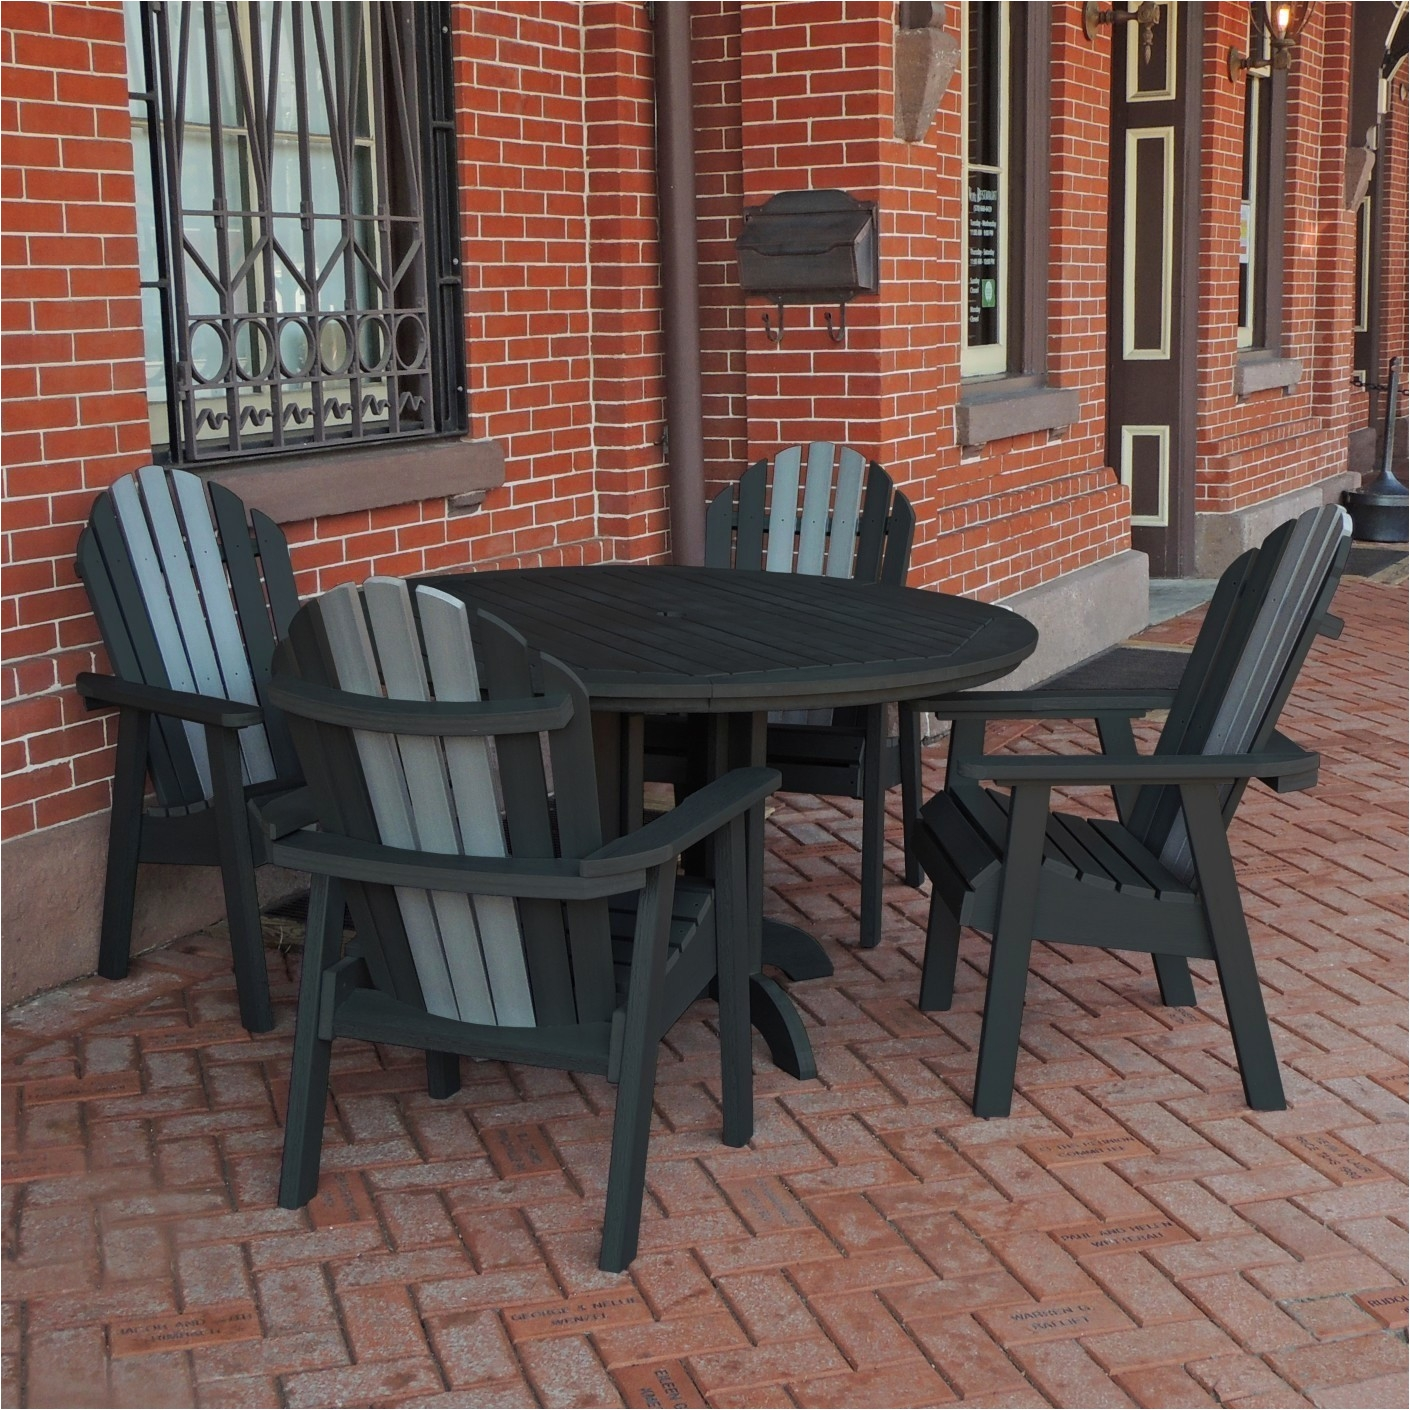 Chair Caning Supplies Nz Plastic Outdoor Table